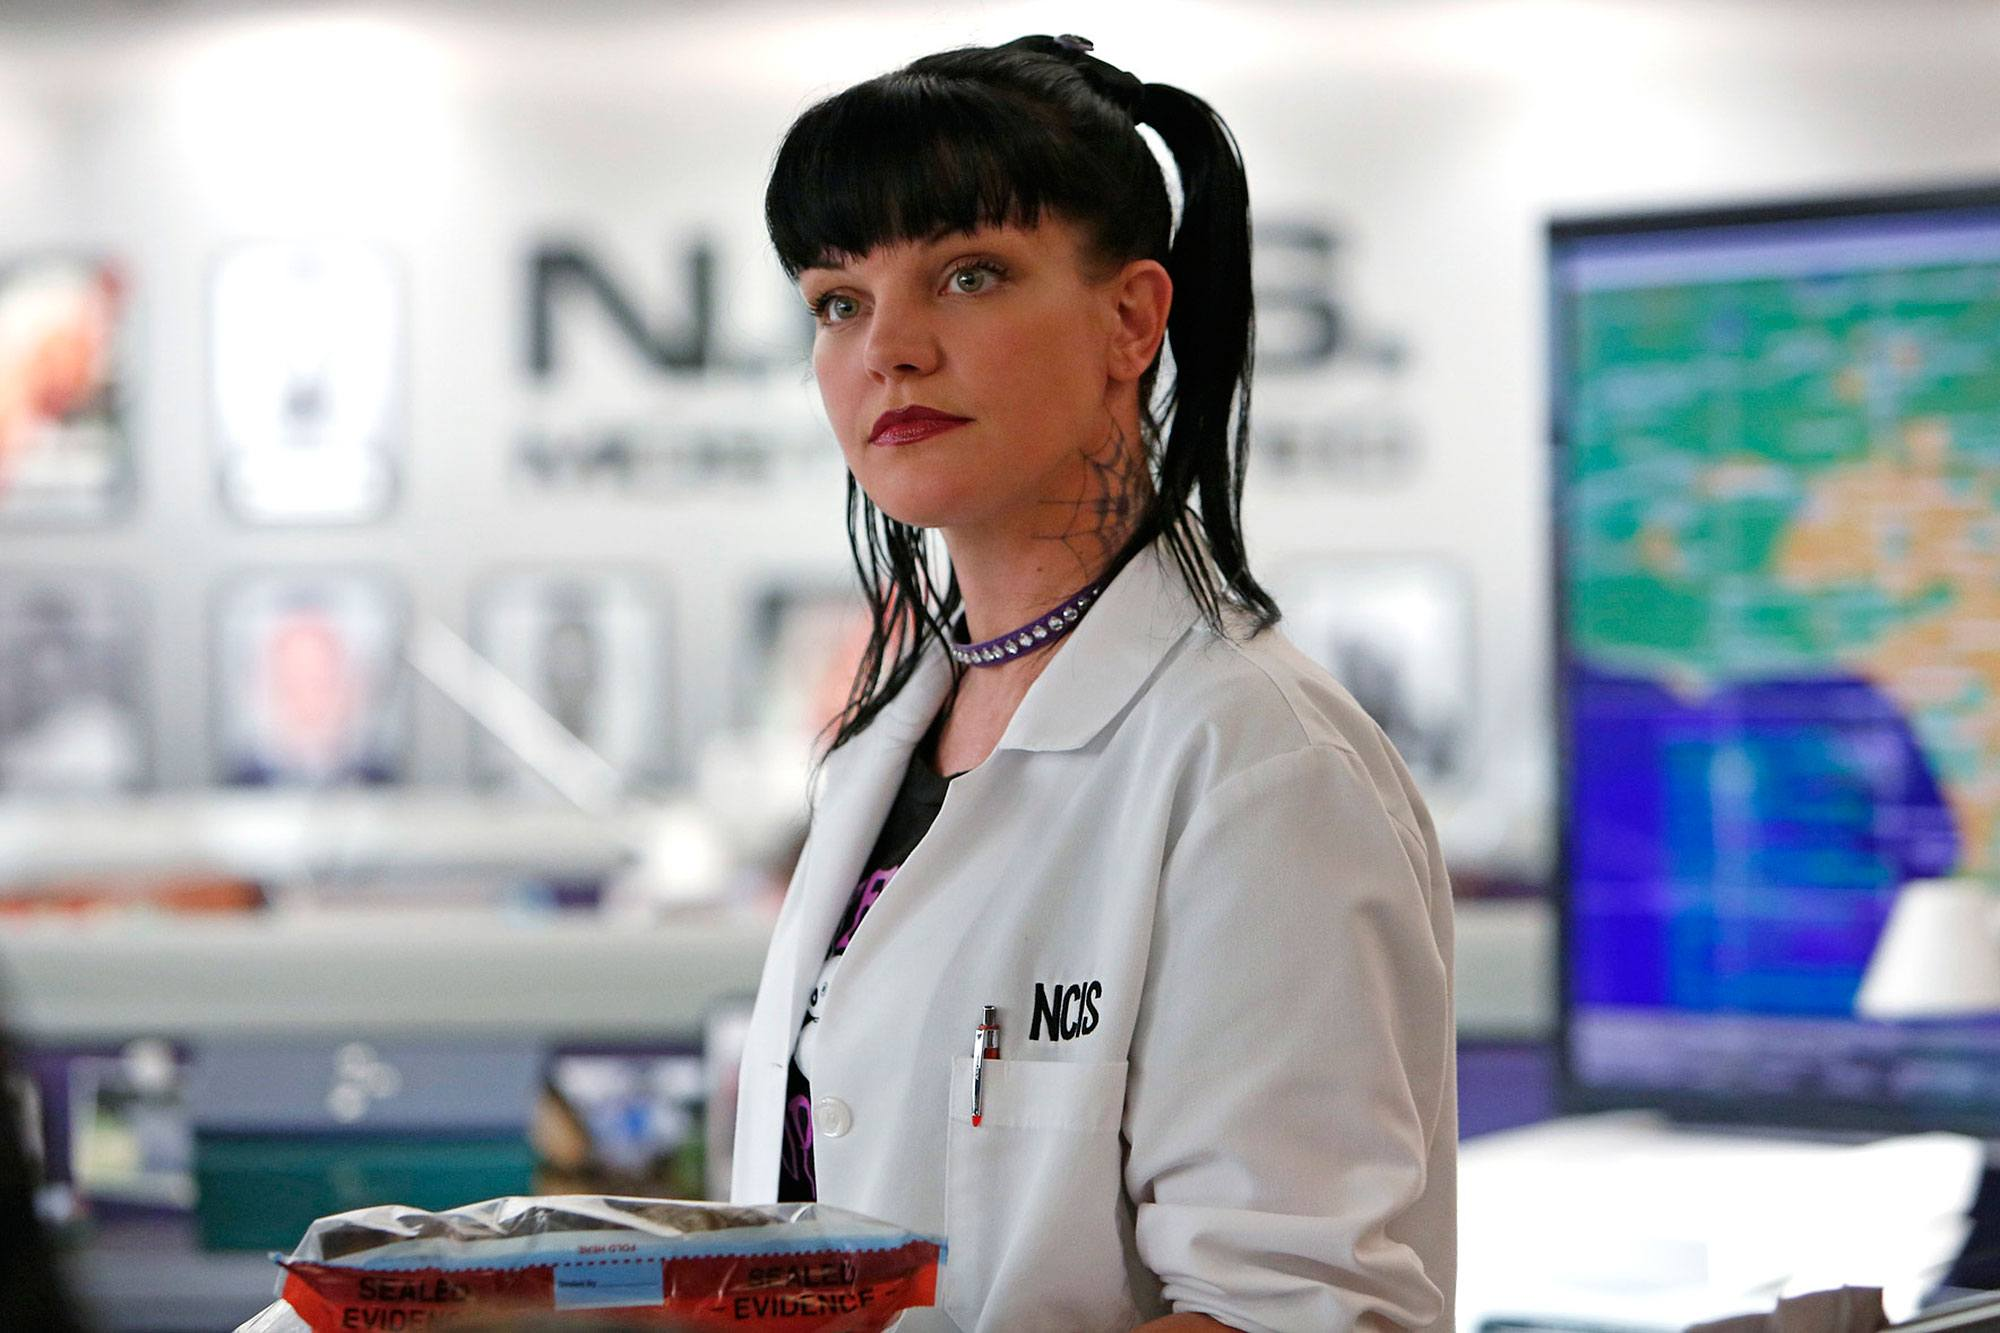 """LOS ANGELES - AUGUST 14: """"Under the Radar"""" -- The NCIS team must rely on Twitter for a case involving a missing Navy Lieutenant, on NCIS, Tuesday, Oct. 8 (8:00-9:00 PM, ET/PT) on the CBS Television Network. Pictured: Pauley Perrette. (Photo by Cliff Lipson/CBS via Getty Images)"""